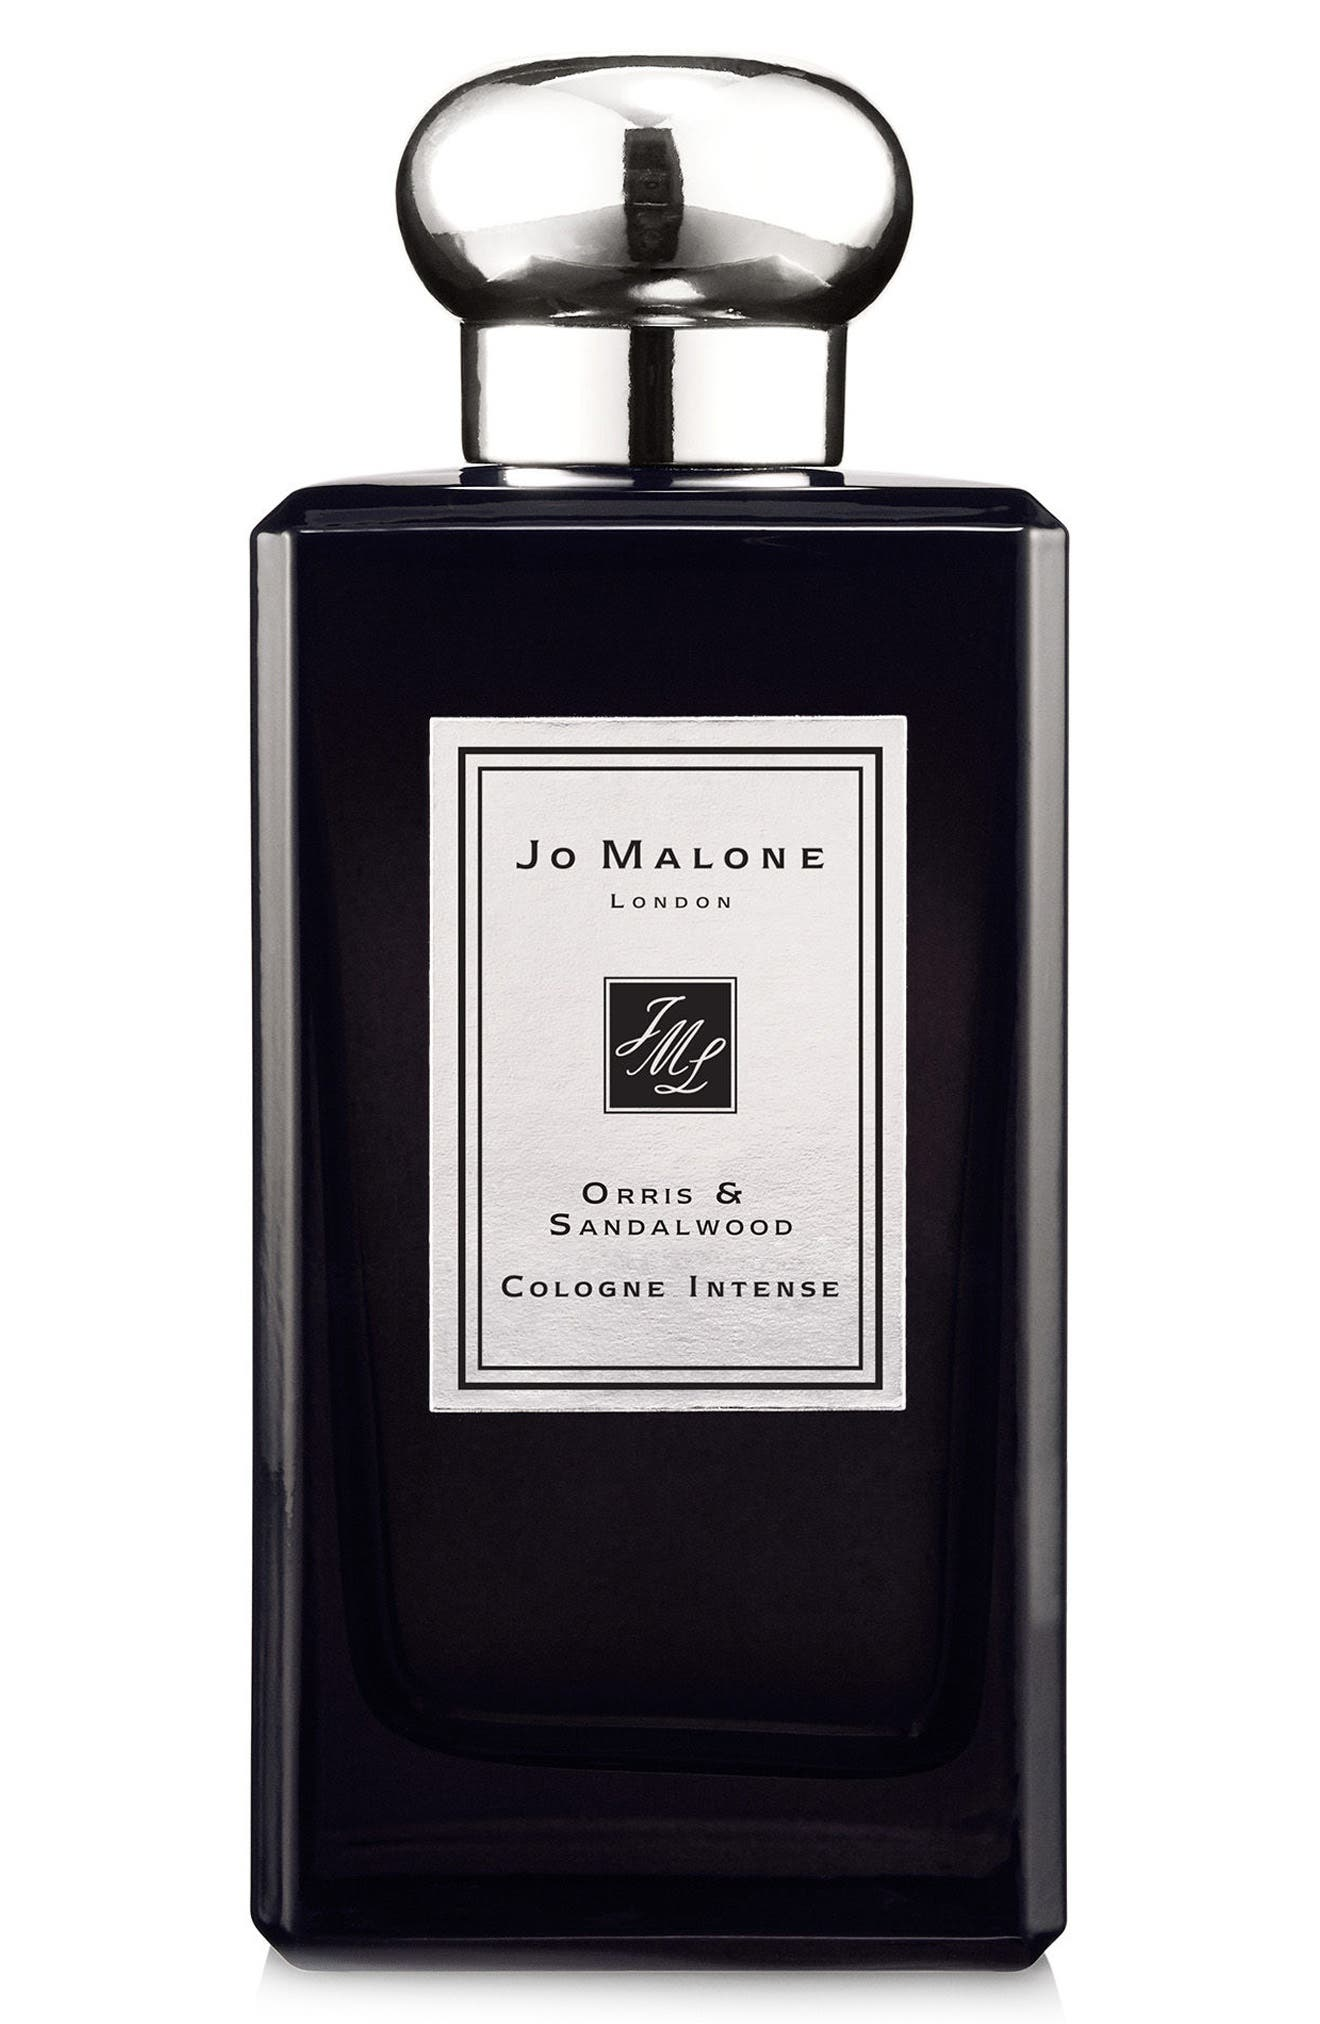 Jo Malone London™ 'Orris & Sandalwood' Cologne Intense